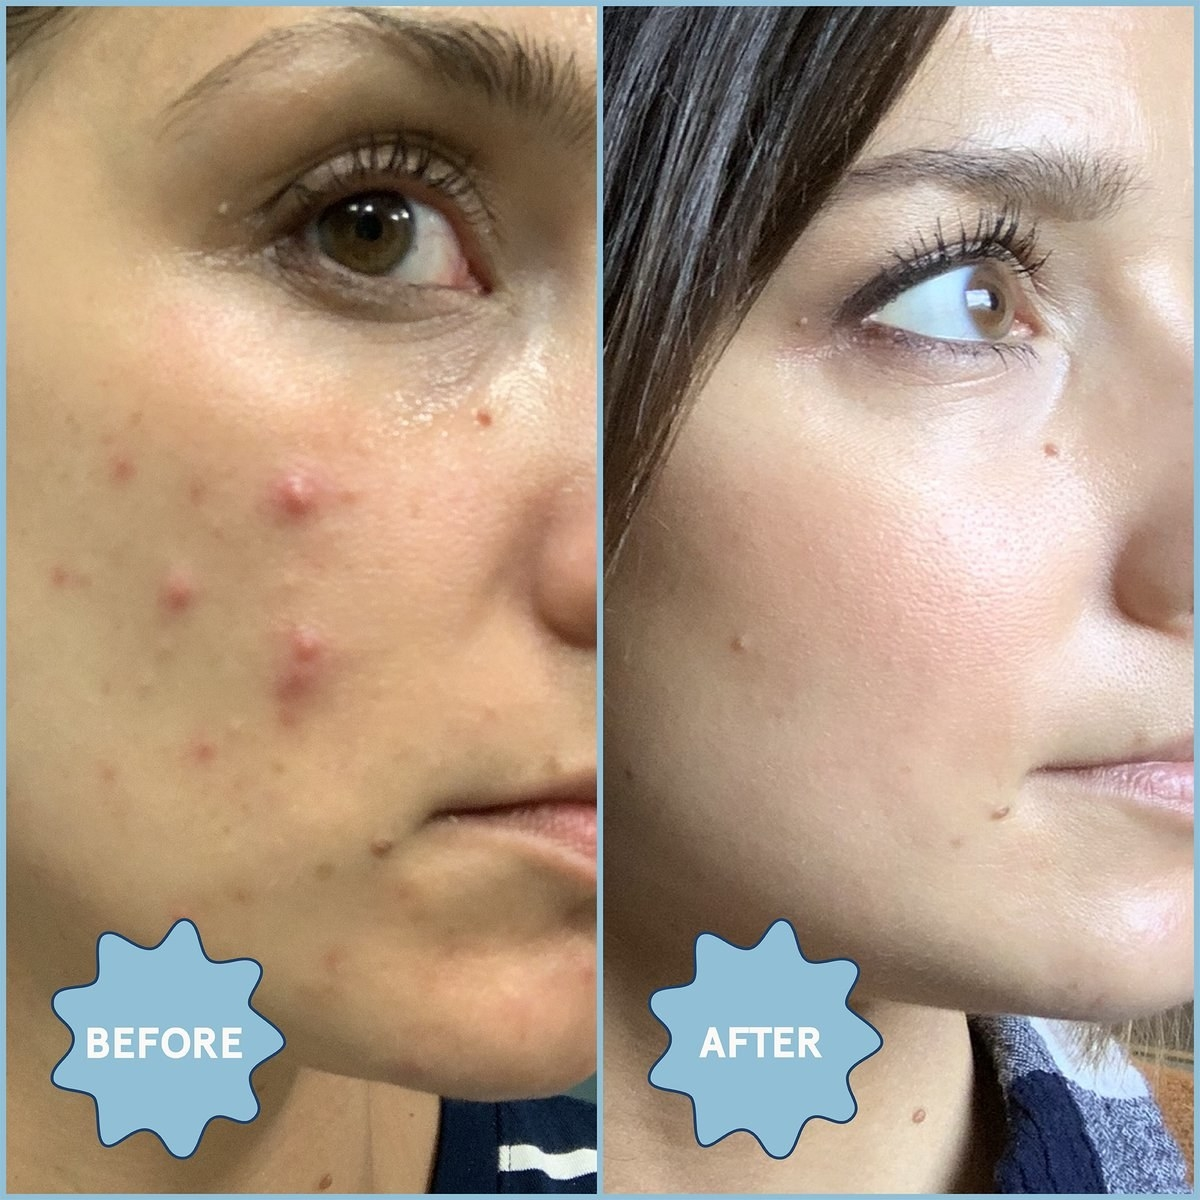 before and after pic of person with pimple and then clear skin